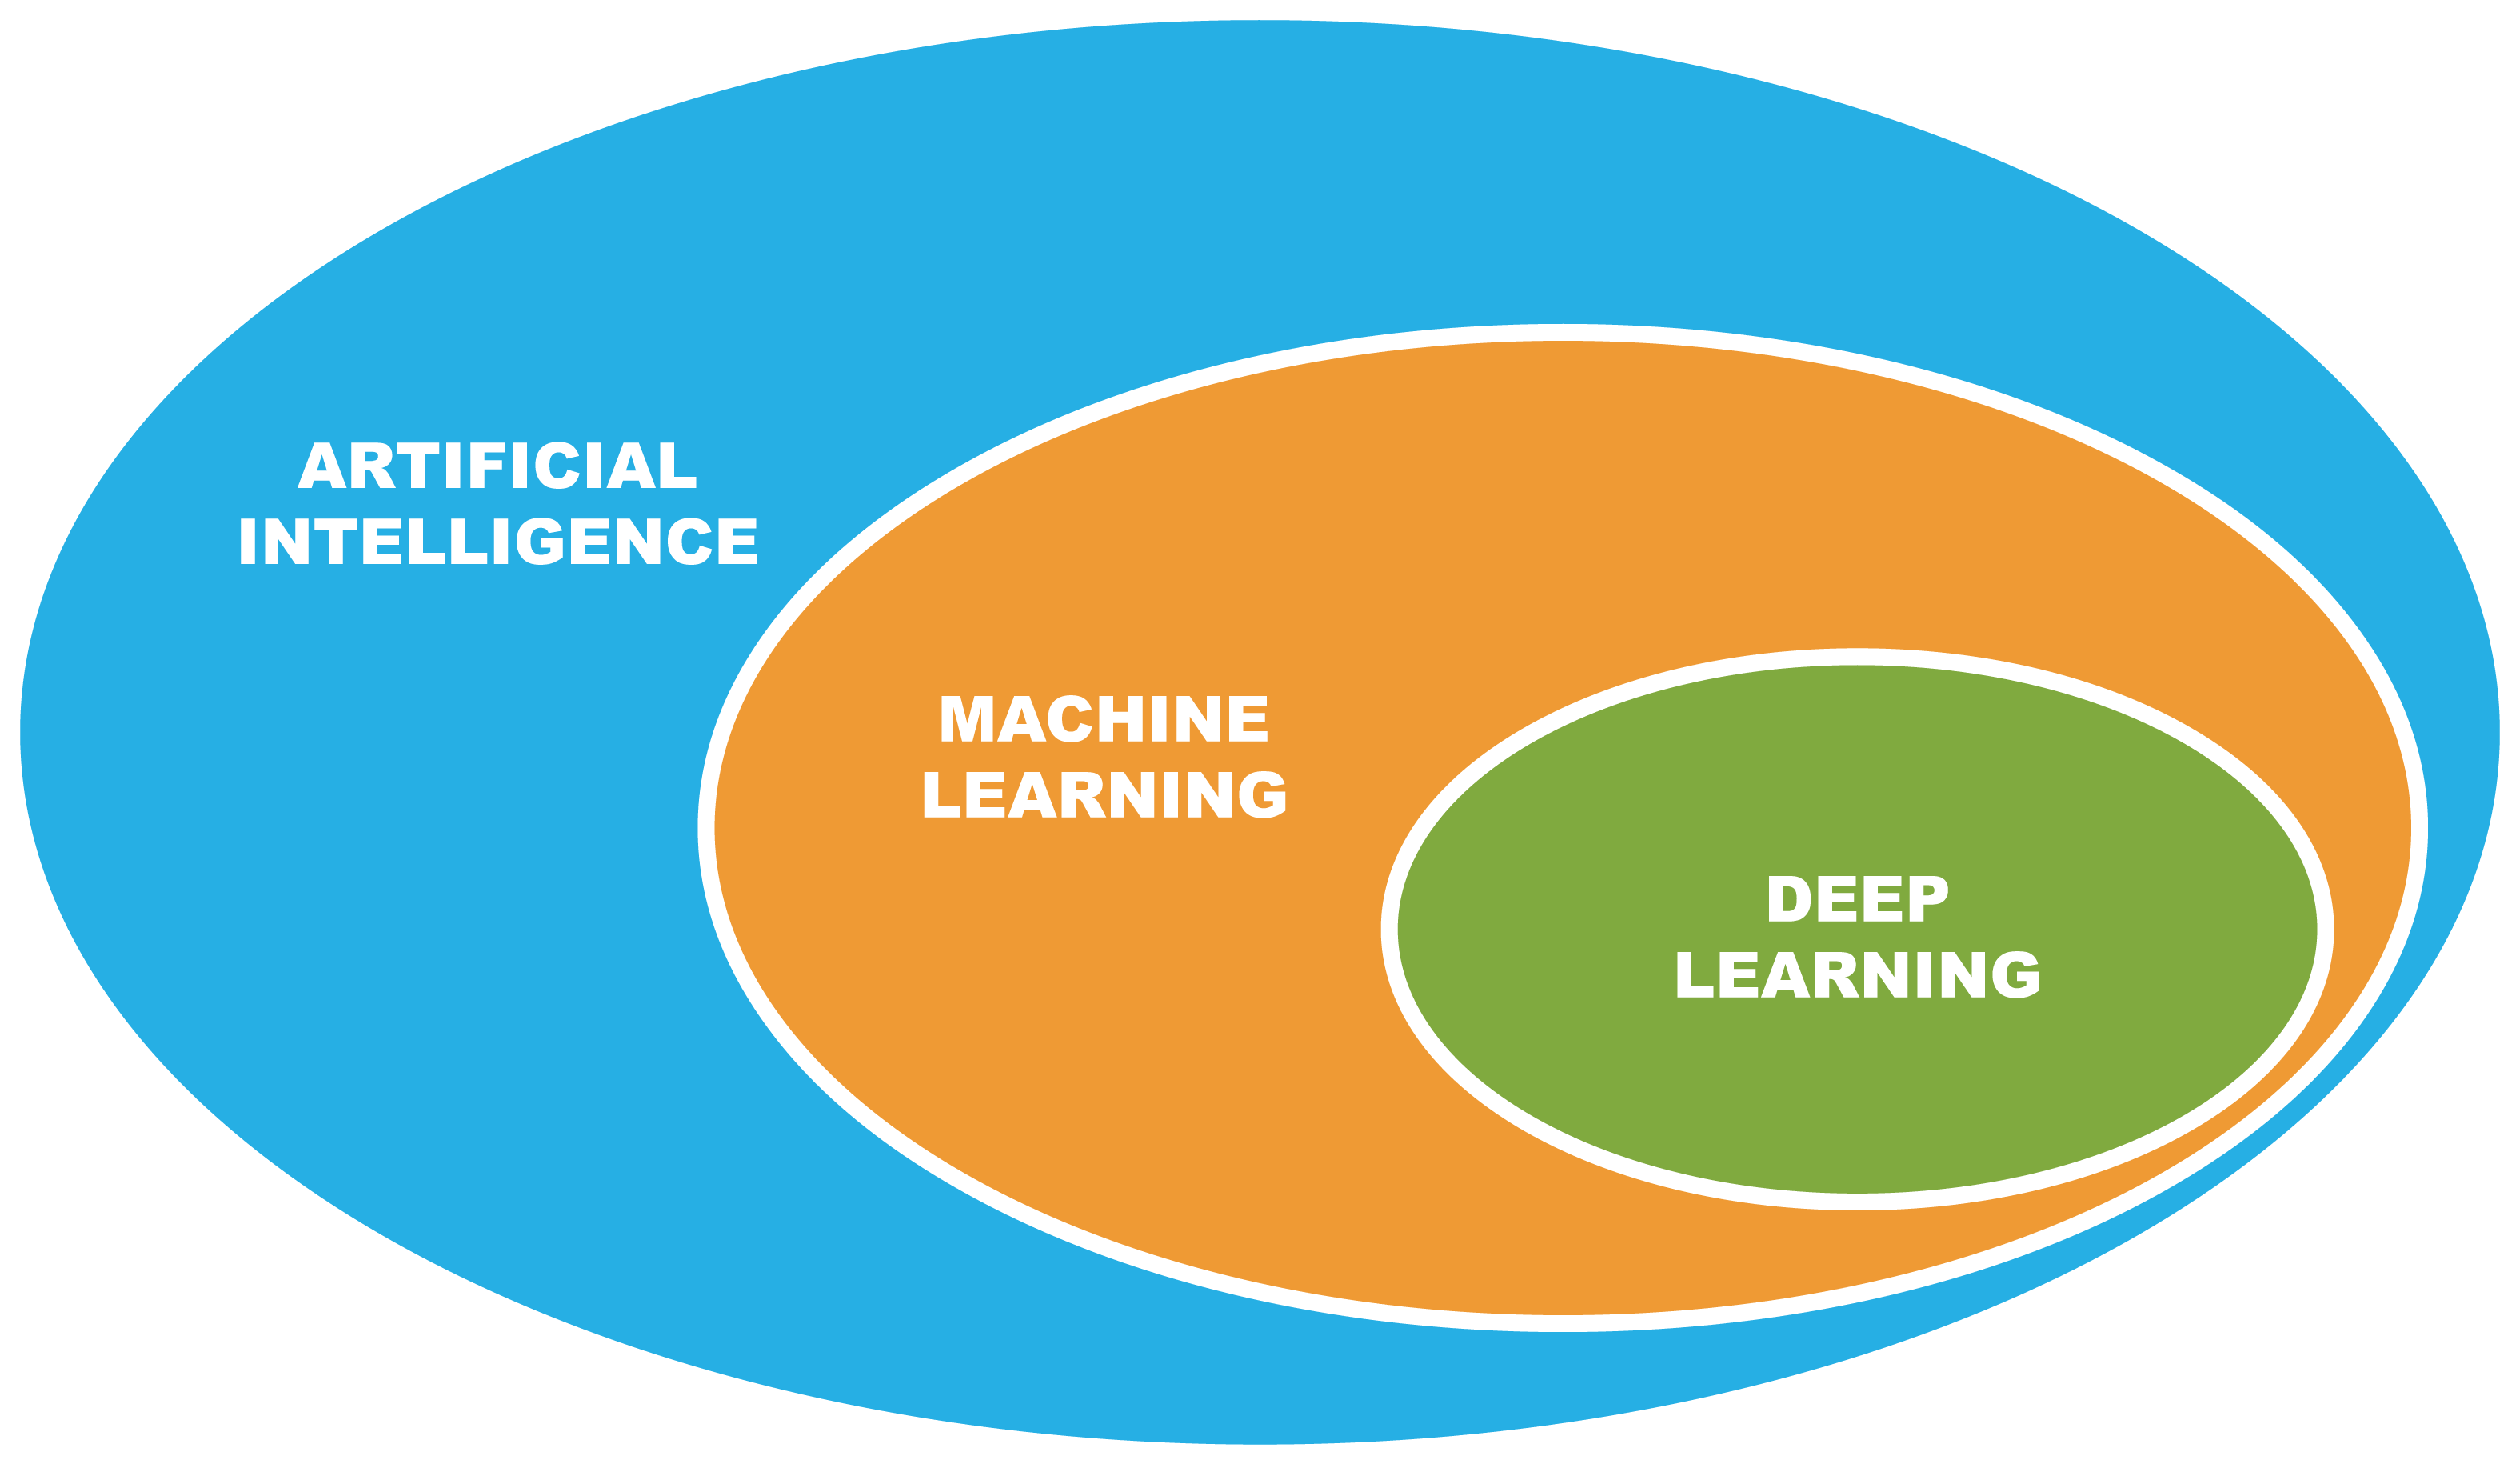 Deep Learning is a subset of Machine Learning, which is a branch of Artificial Intelligence